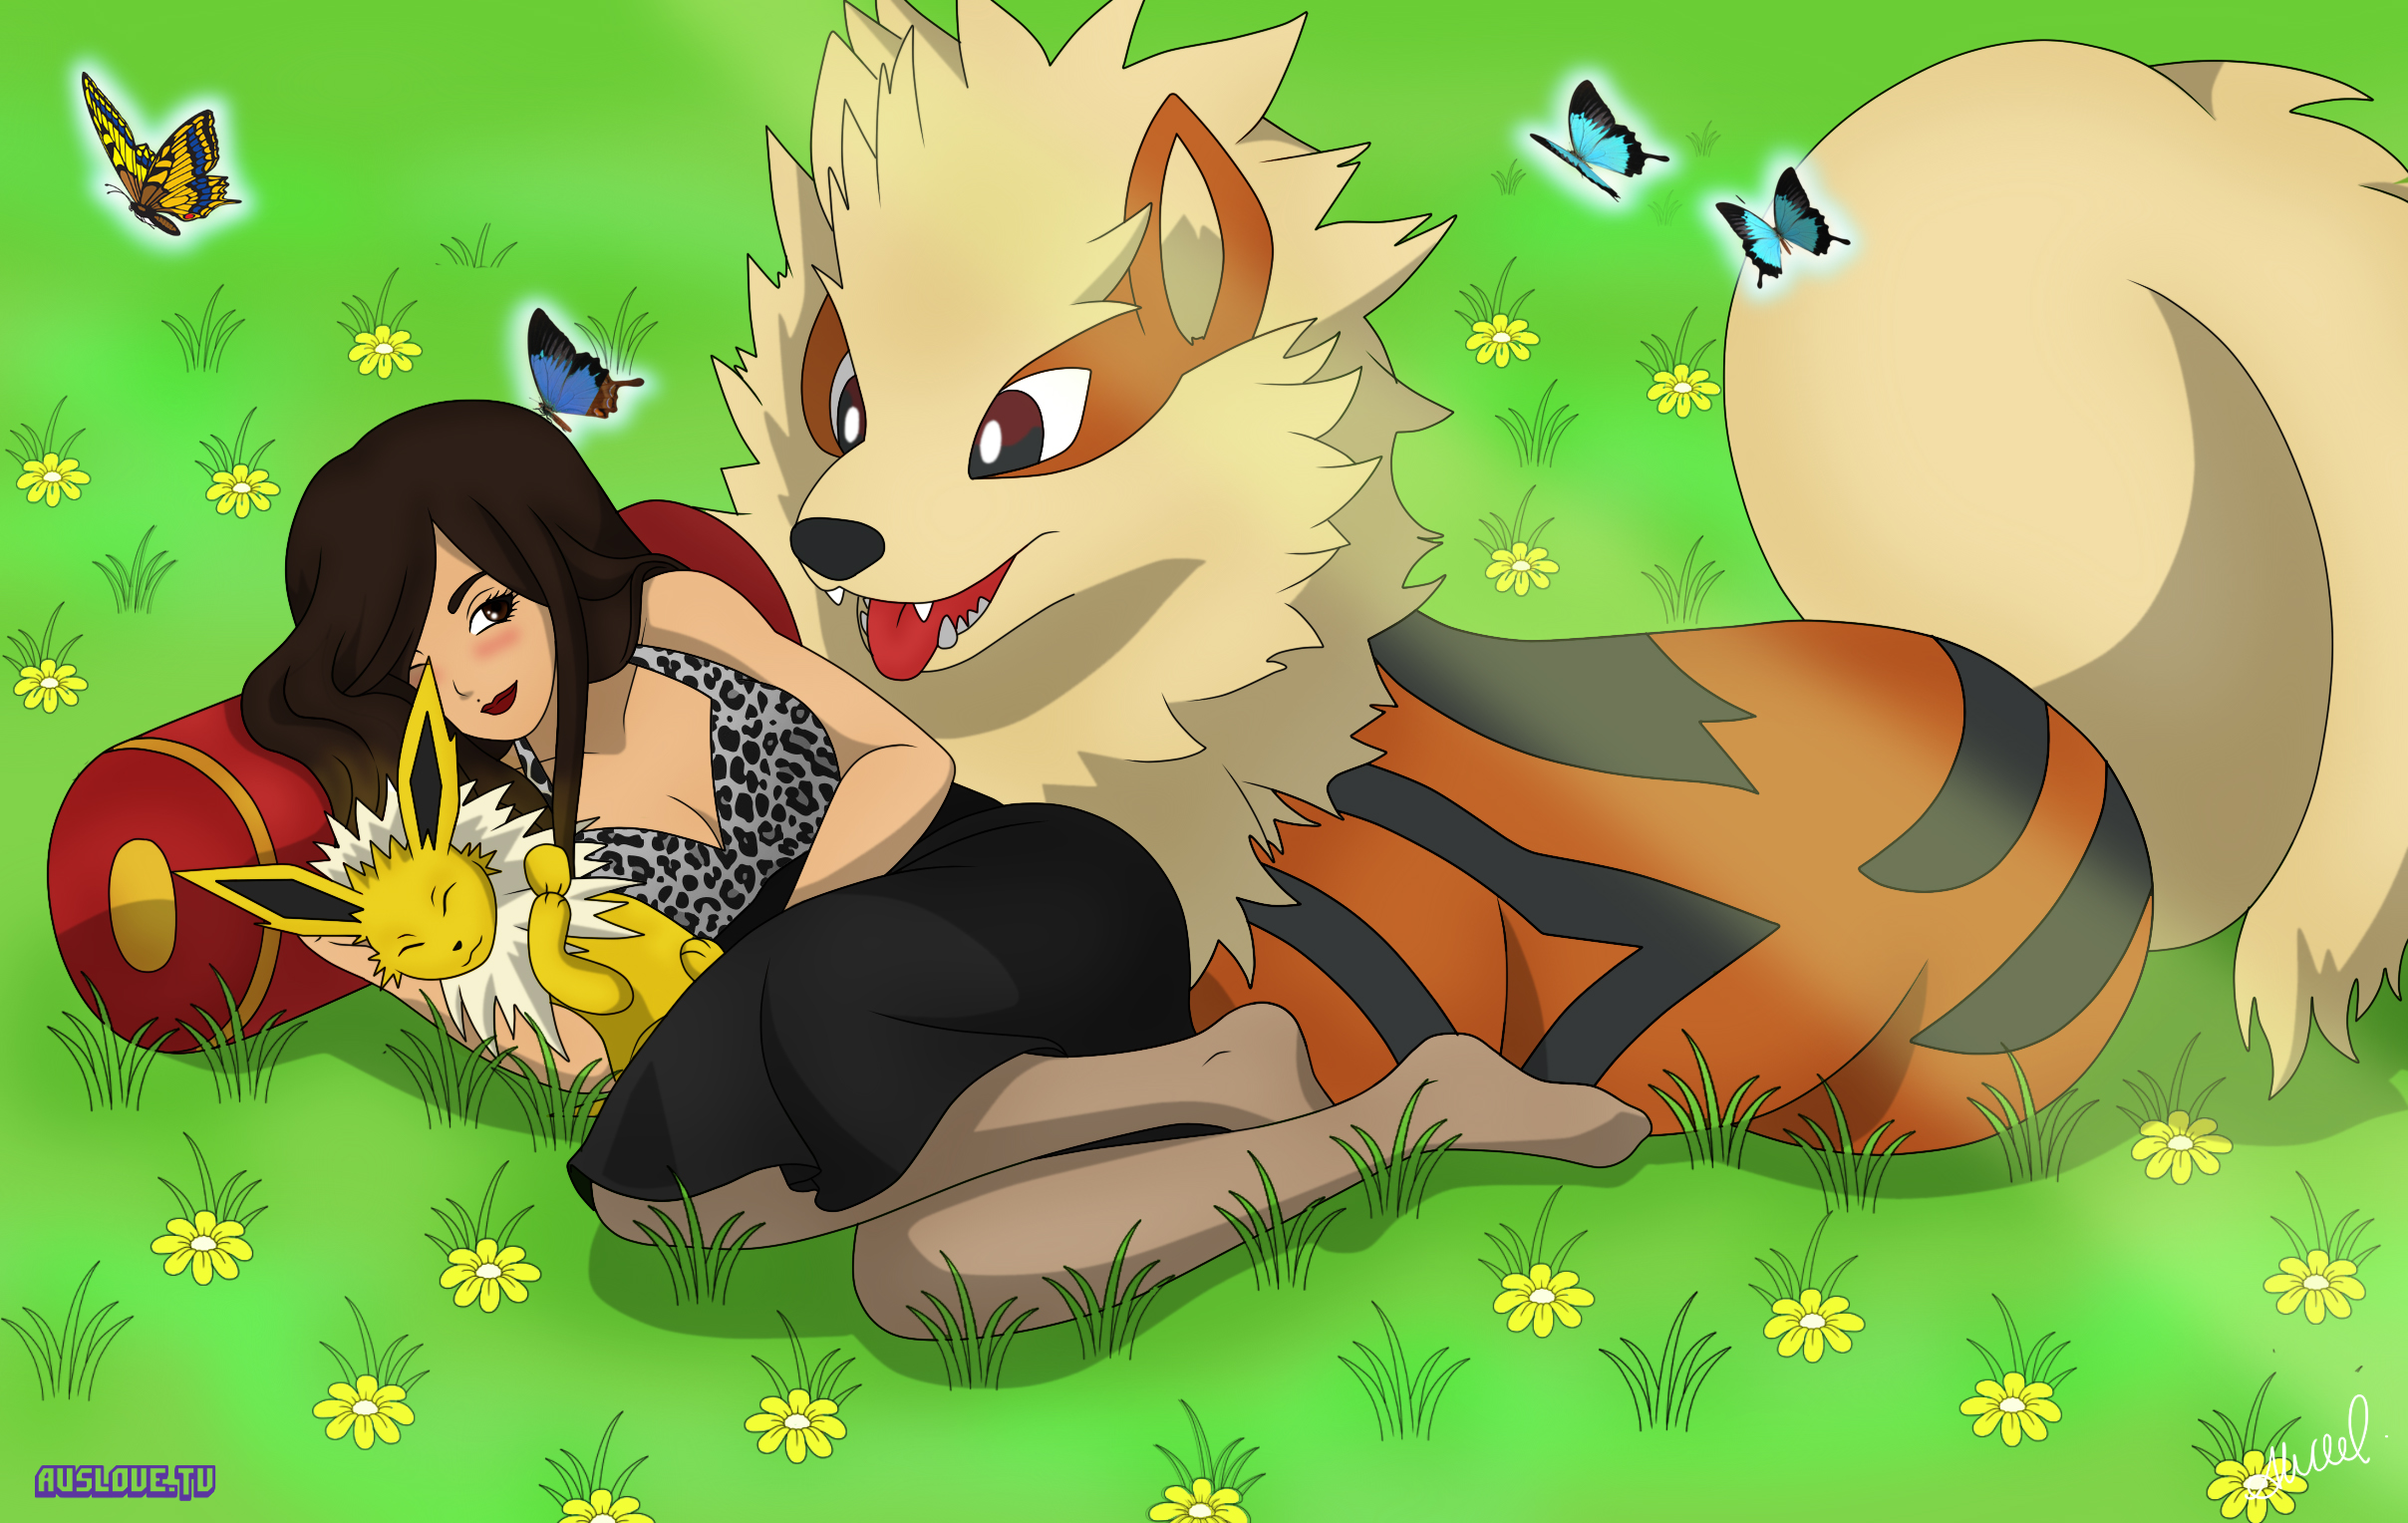 Arcanine and Jolteon - Twitch @OmgYellow by AusLove